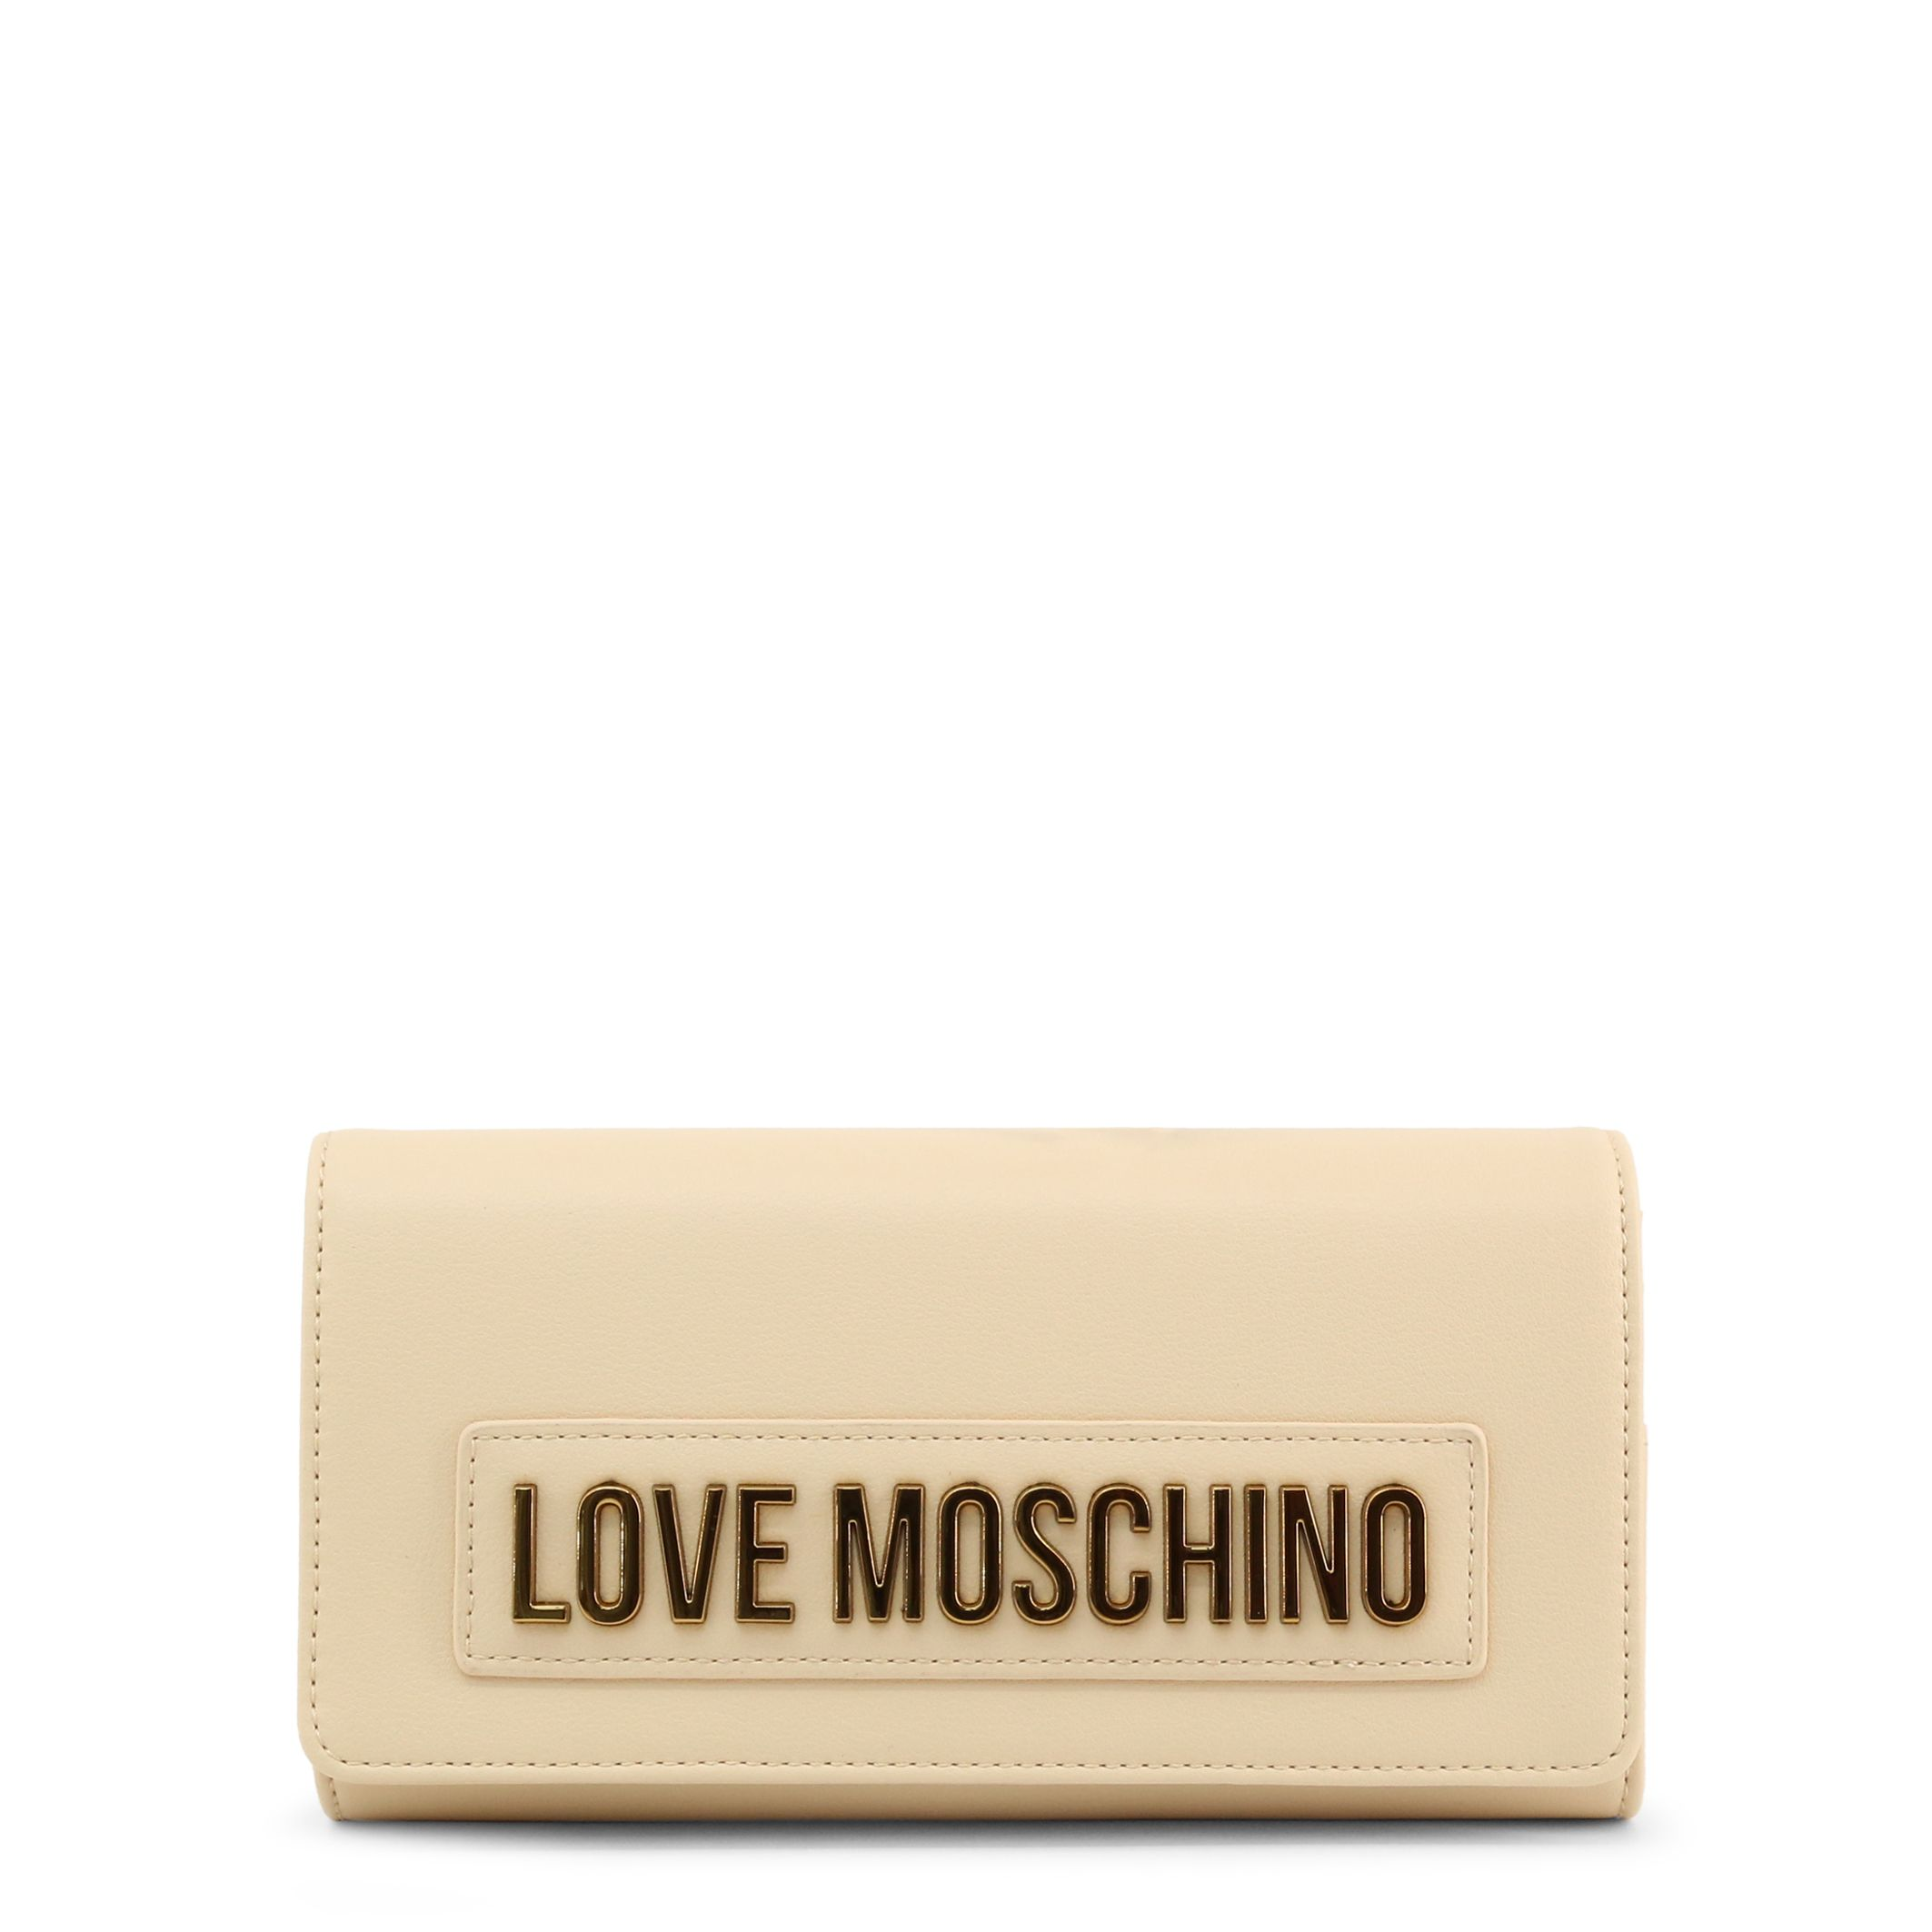 Accessoires Love Moschino – JC5625PP1BLK